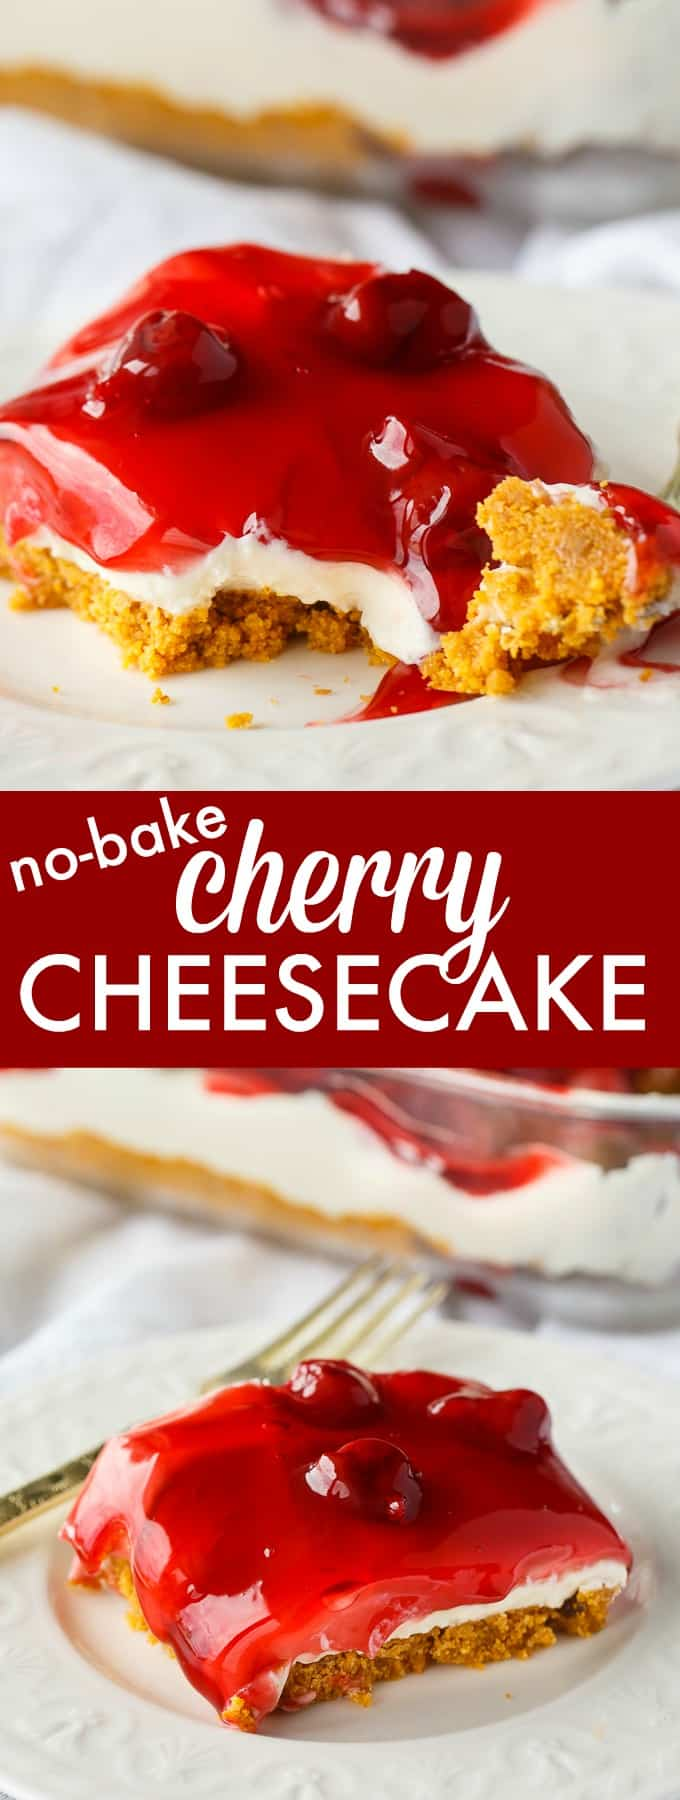 No-Bake Cherry Cheesecake - Deliciously simple no-bake cheesecake that can be whipped up in a matter of minutes! You'll love the sweet graham cracker crumb crust, creamy cheesecake filling and fruity topping.